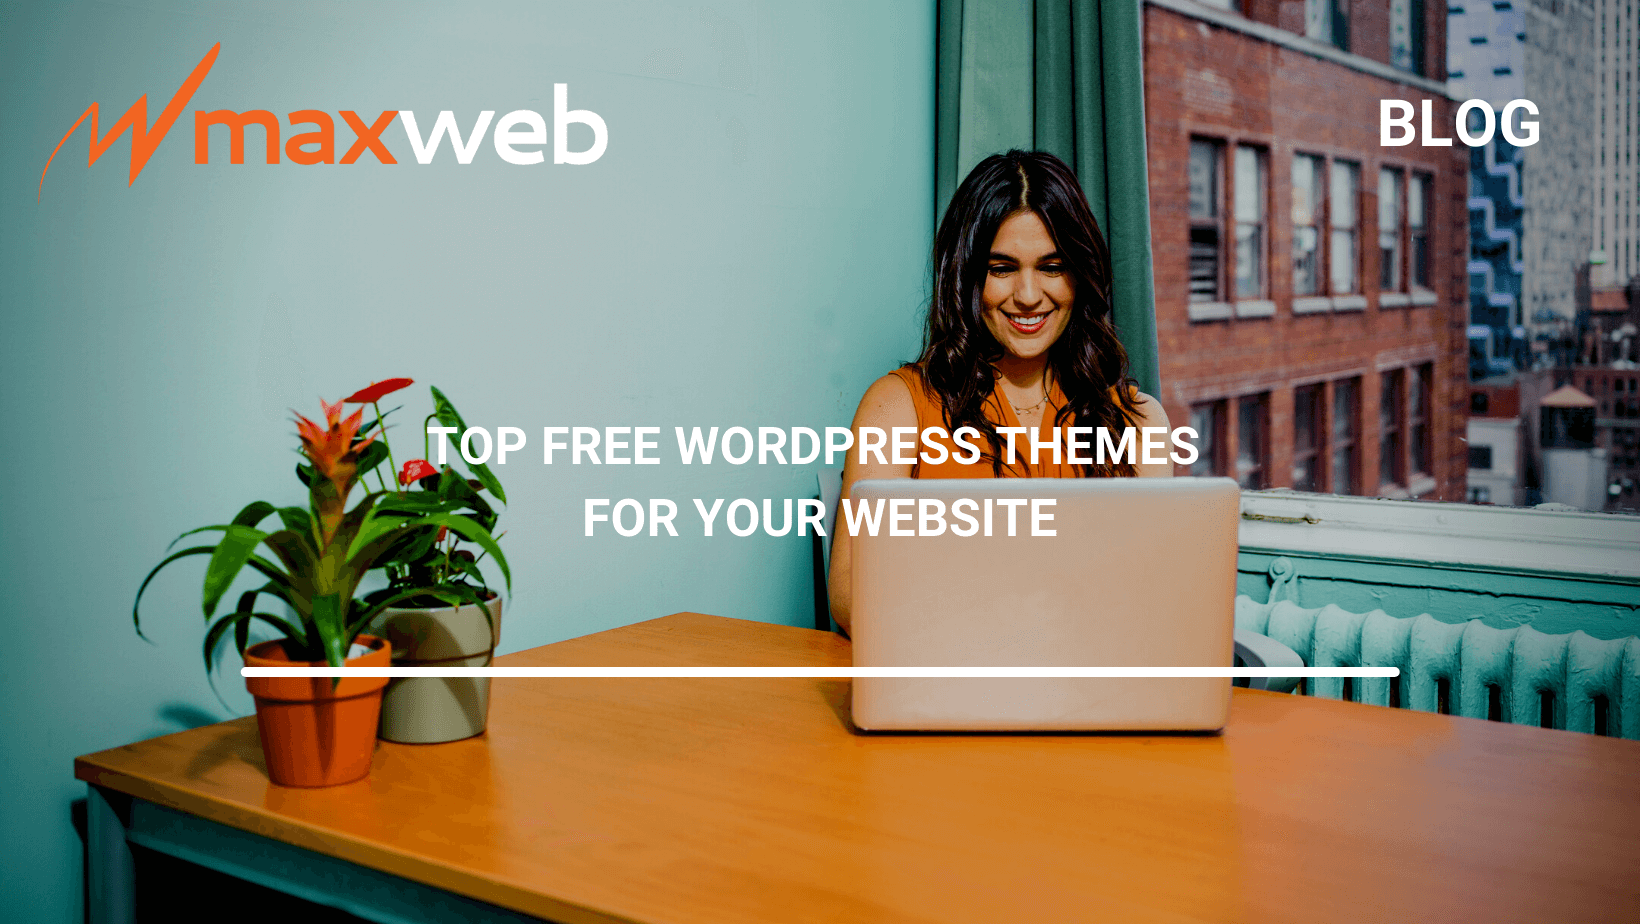 Top Free WordPress Themes For Your Website